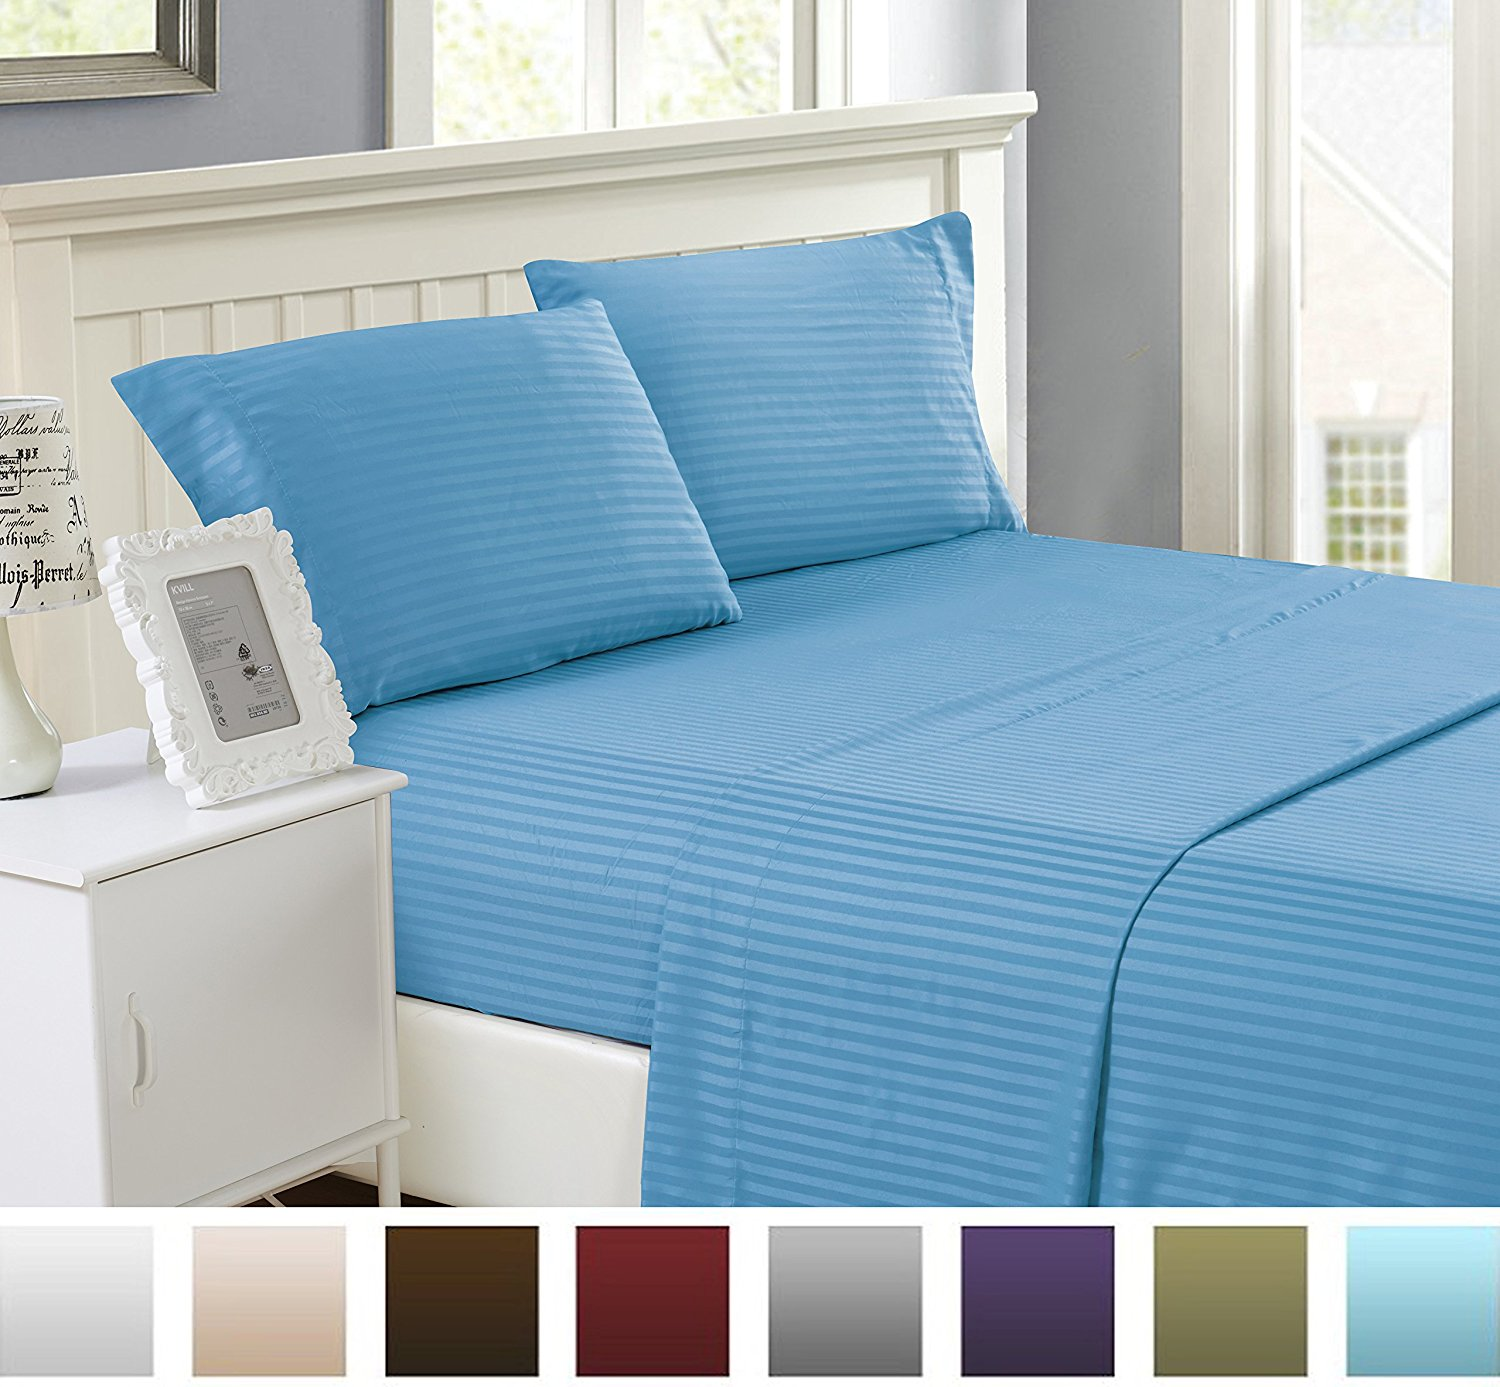 Lux Decor Bed Sheet Set - Brushed Microfiber 1800 Bedding - Wrinkle, Fade, Stain Resistant - Hypoallergenic - 4 Pieces